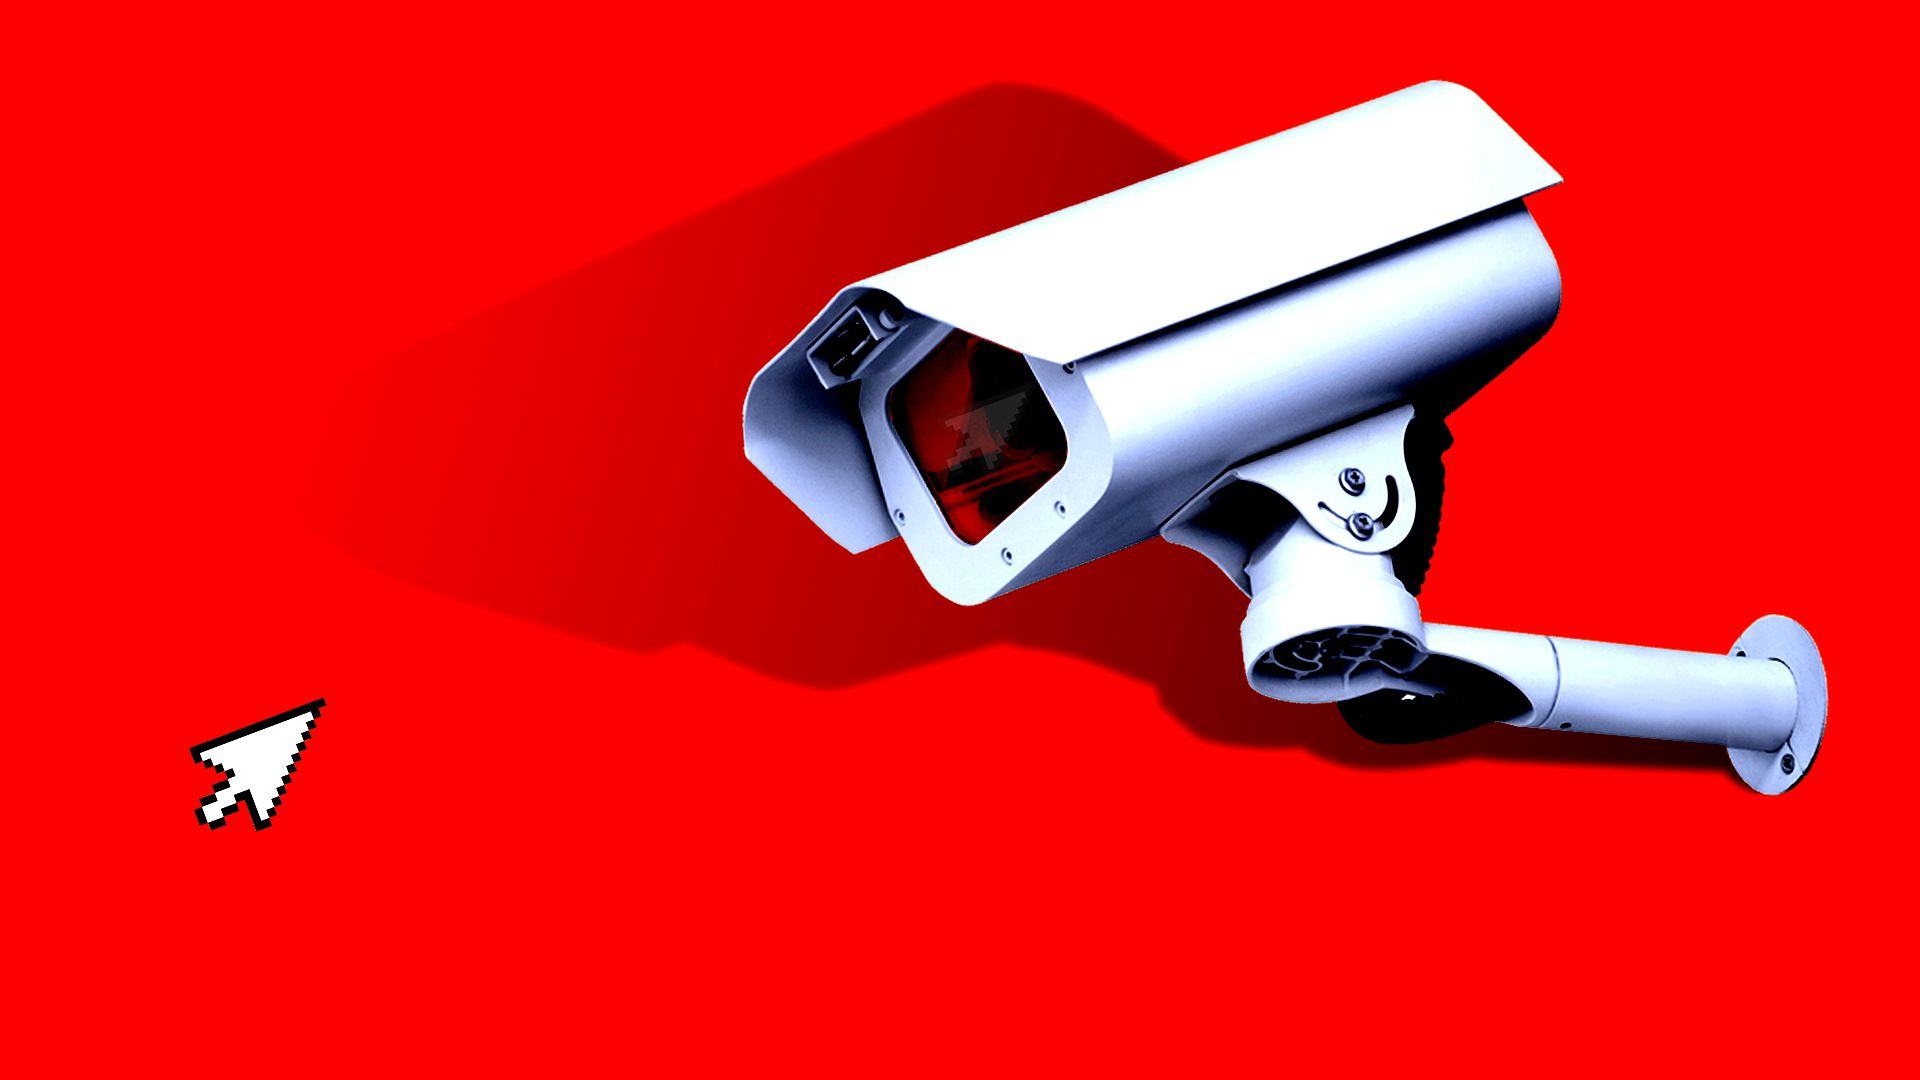 A security camera points at a computer cursor against a red backdrop